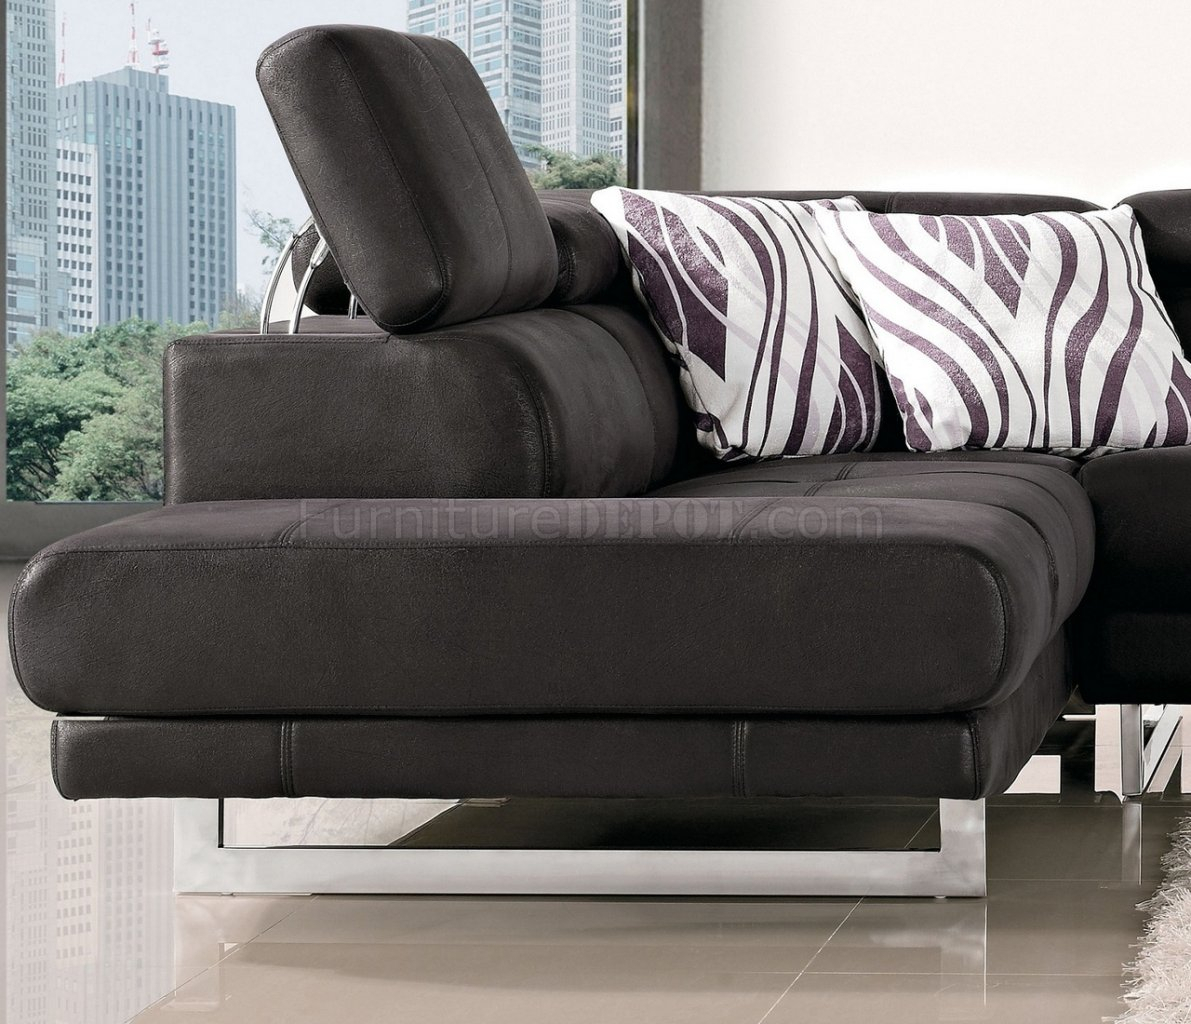 Black Fabric Modern Sectional Sofa W/Adjustable Headrest With Regard To Sectional Sofas (View 10 of 15)